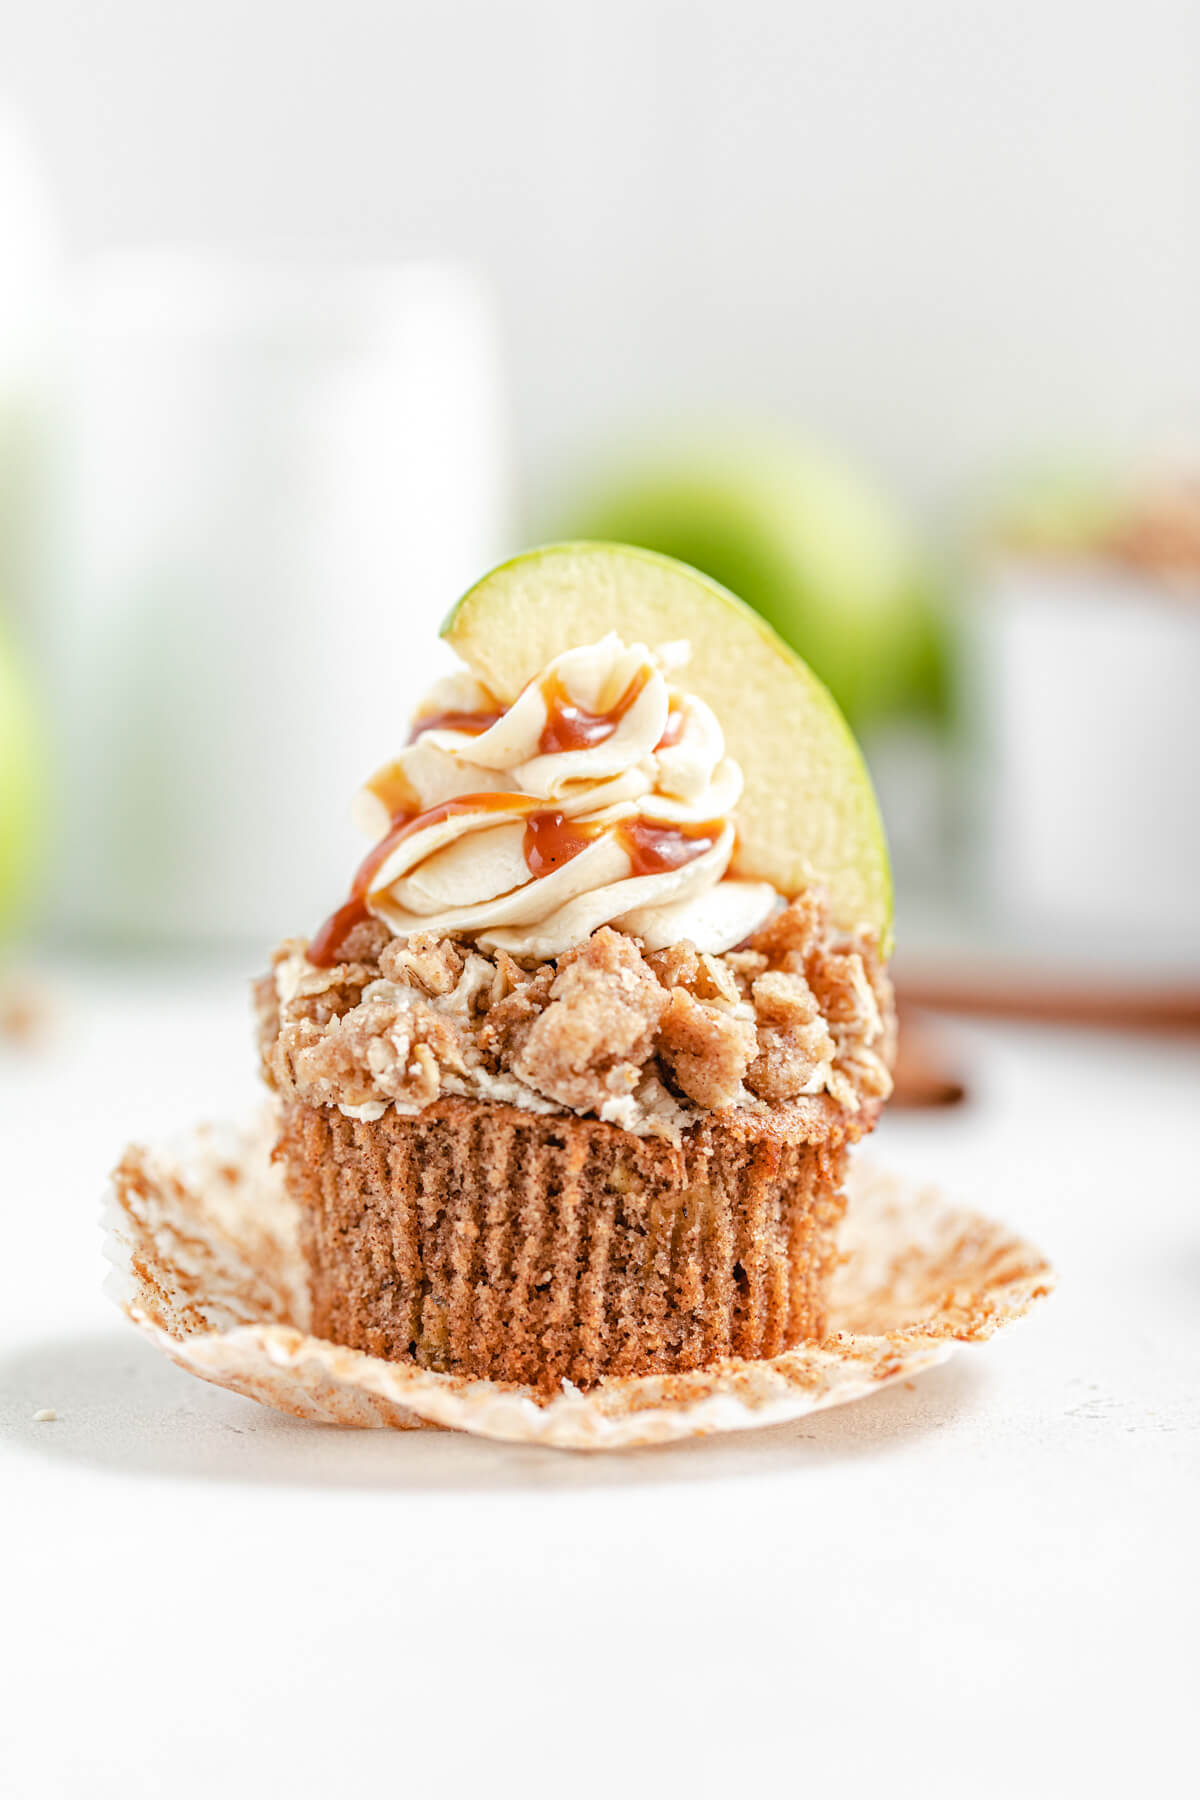 unwrapped apple cupcake